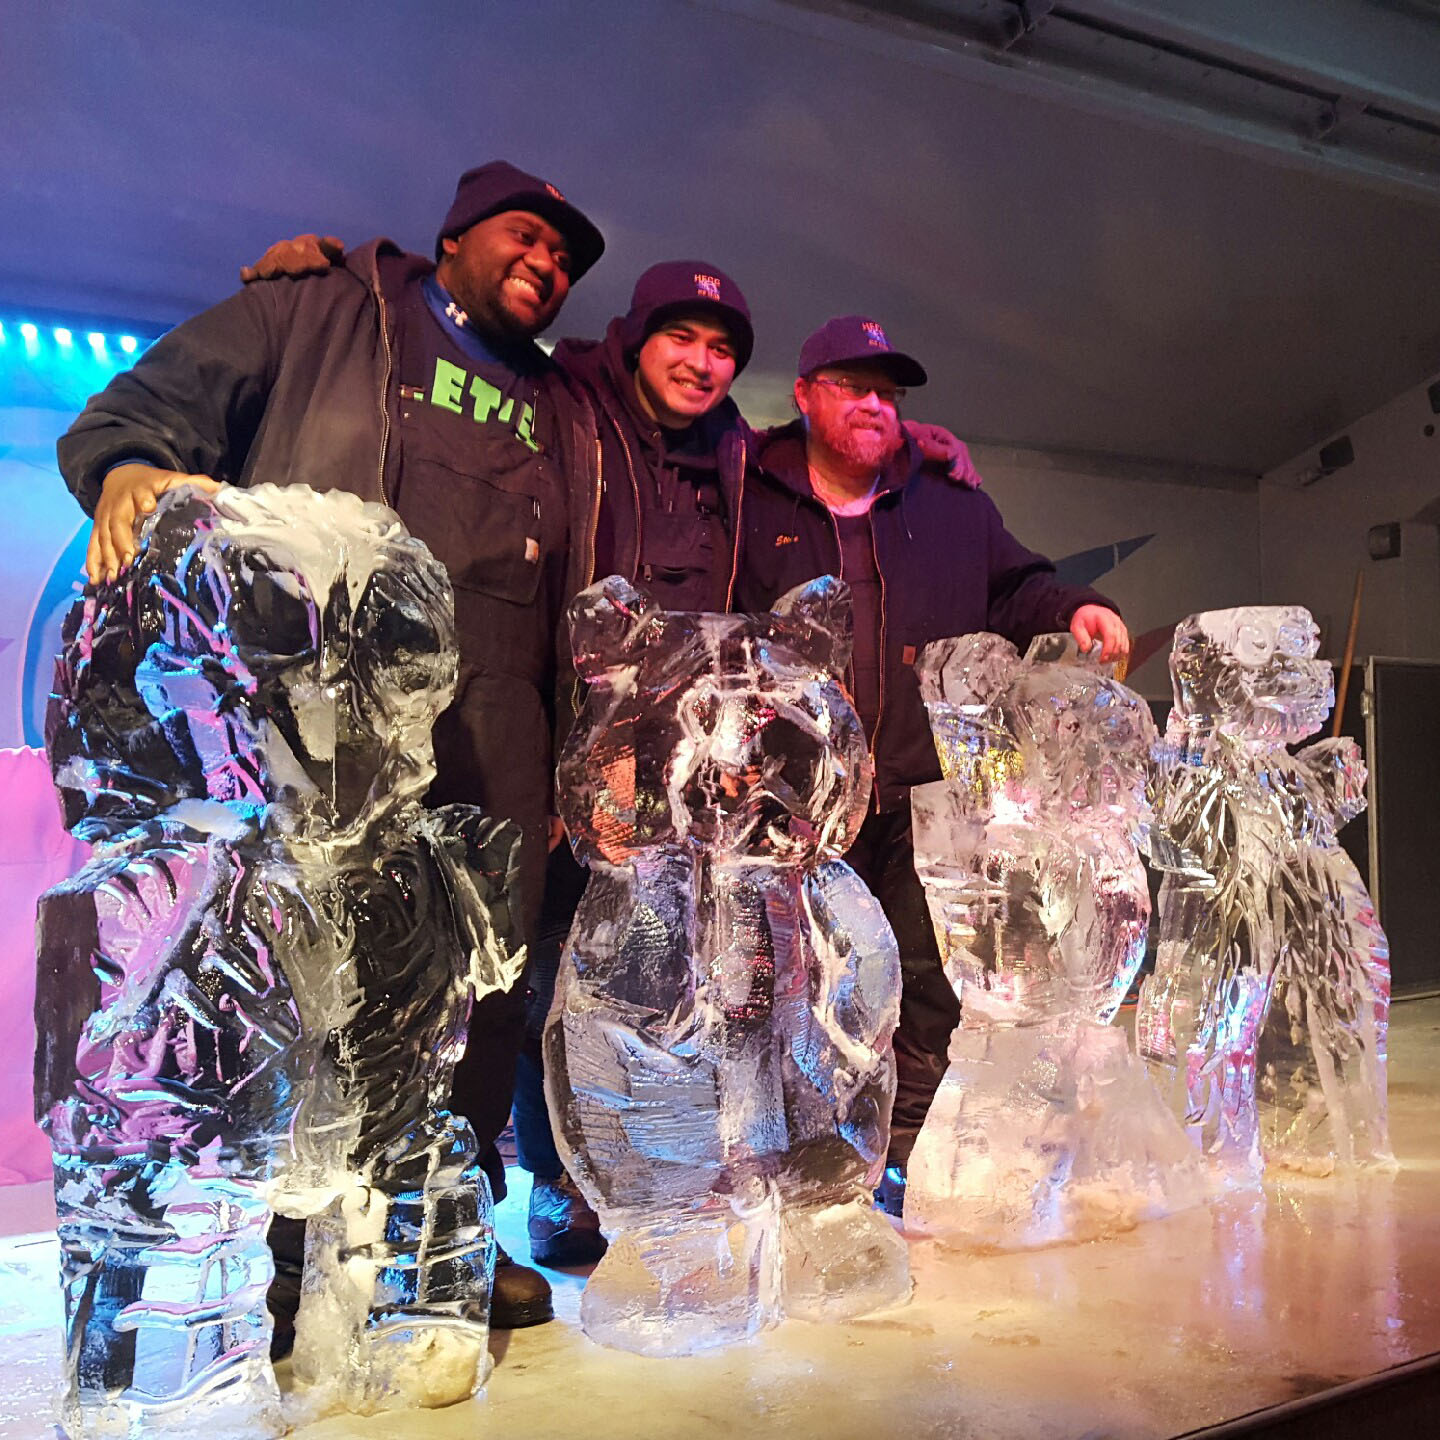 Students standing proudly behind ice sculptures on a stage in a competition